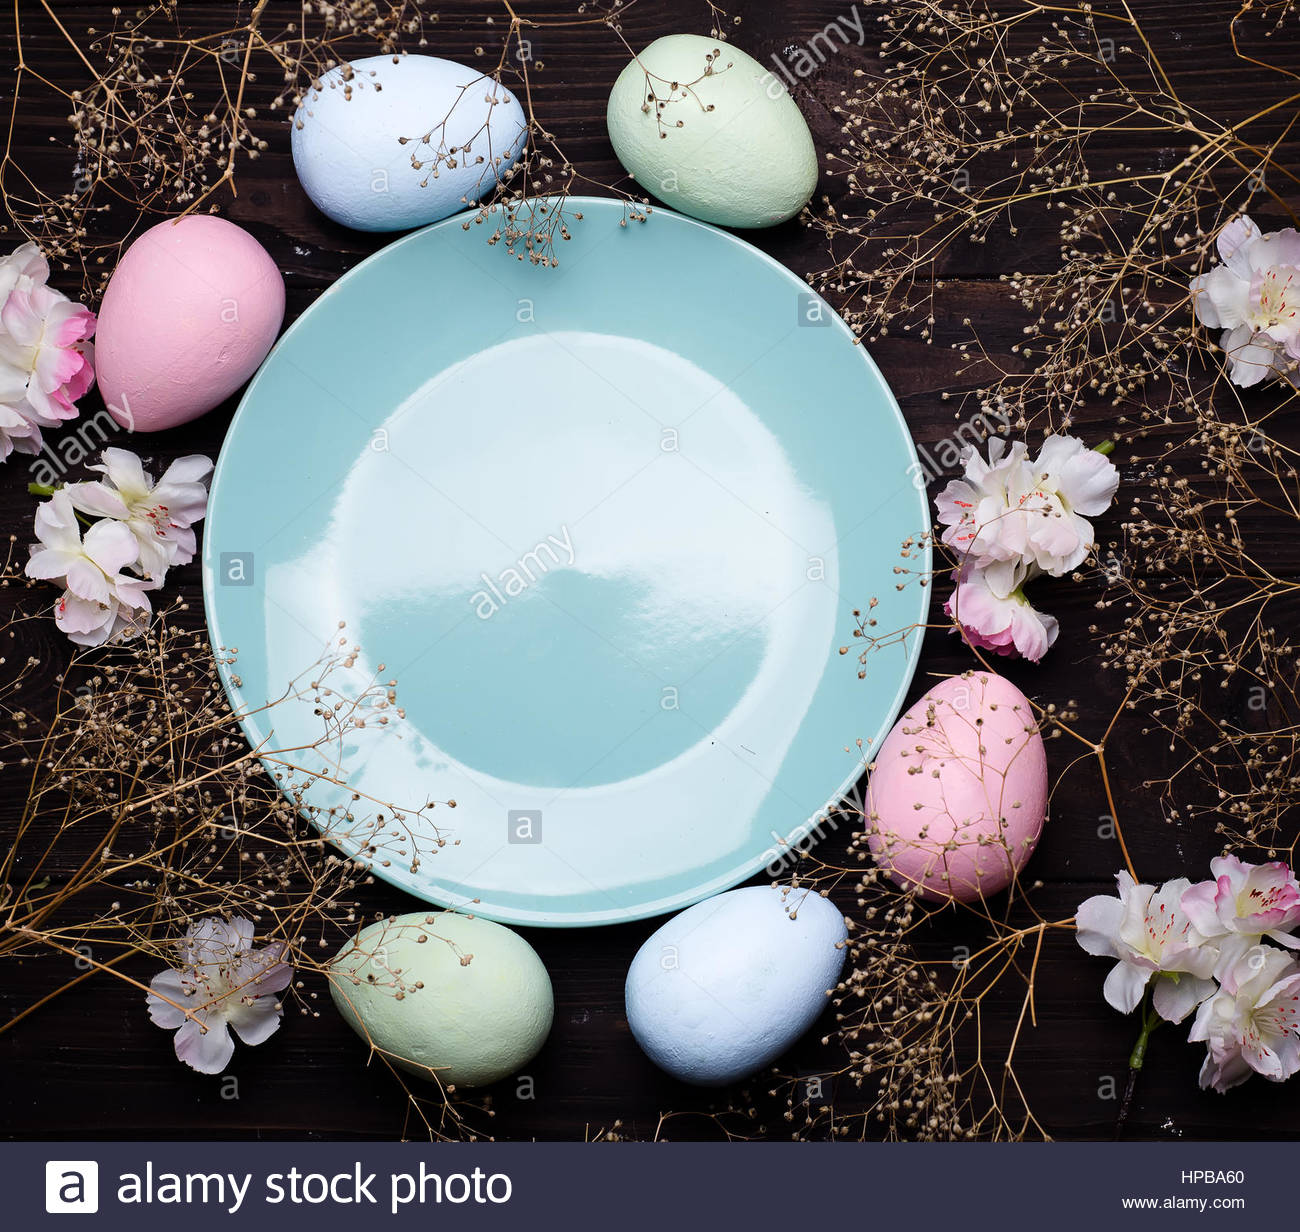 Pastel Color Easter Eggs With A Plate On Dark Wooden Bacgroung , Copy Space  Flat Lay